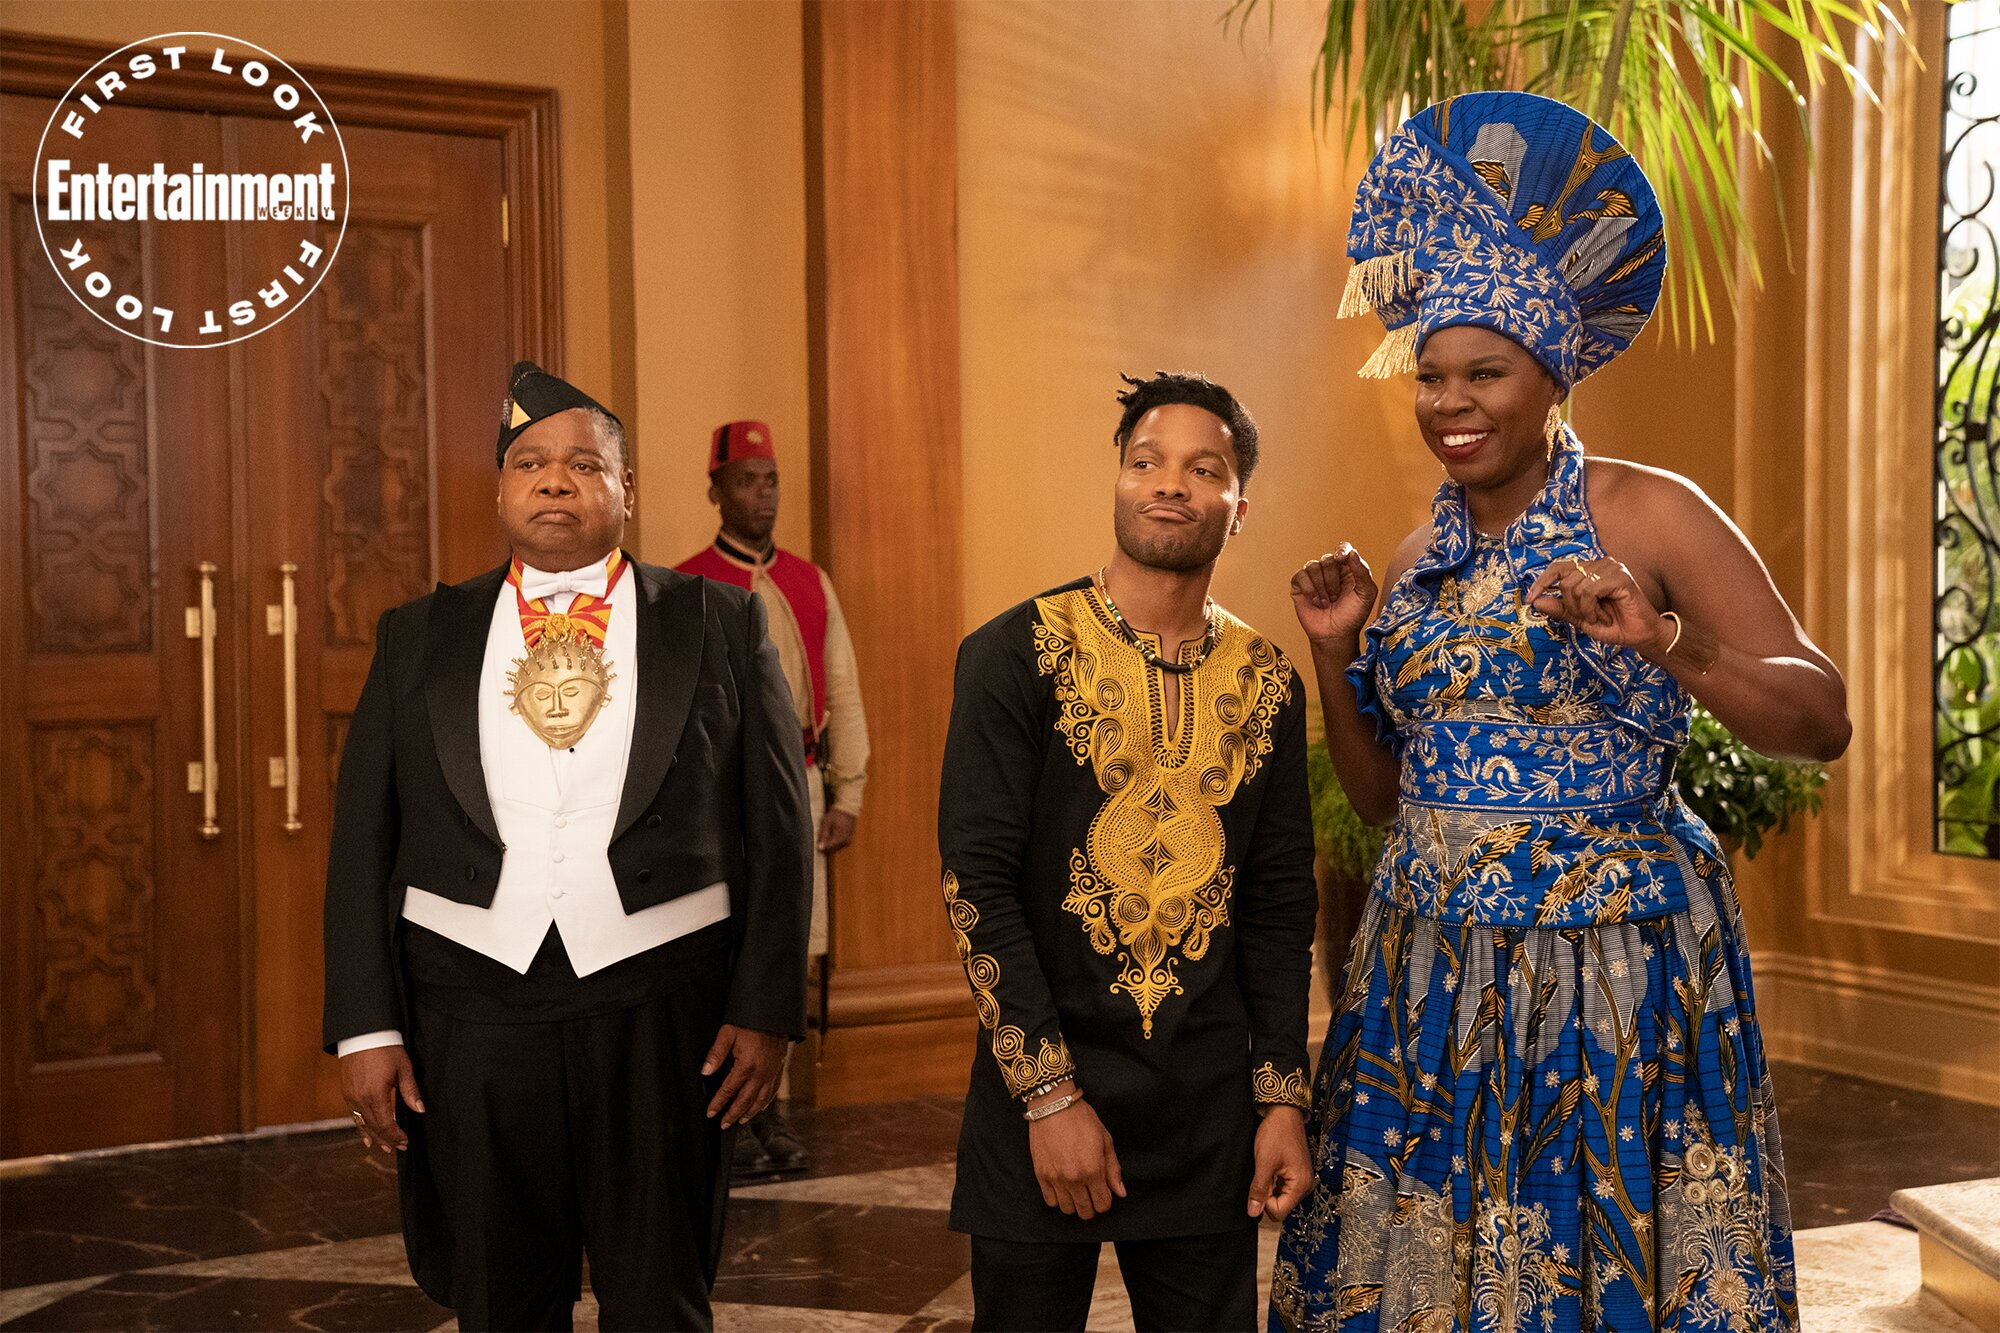 Coming 2 America: See Leslie Jones first look in Coming to America sequel | EW.com